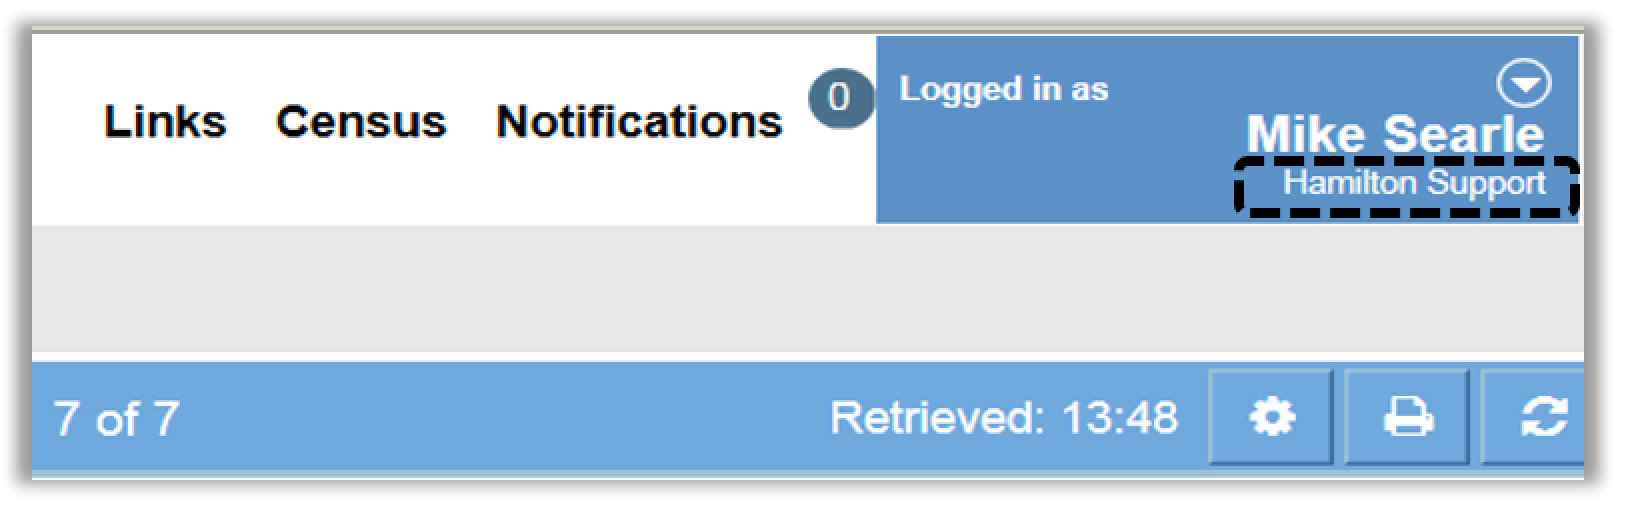 Image of the portal under which you are logged to ClinicalConnect displayed under your name